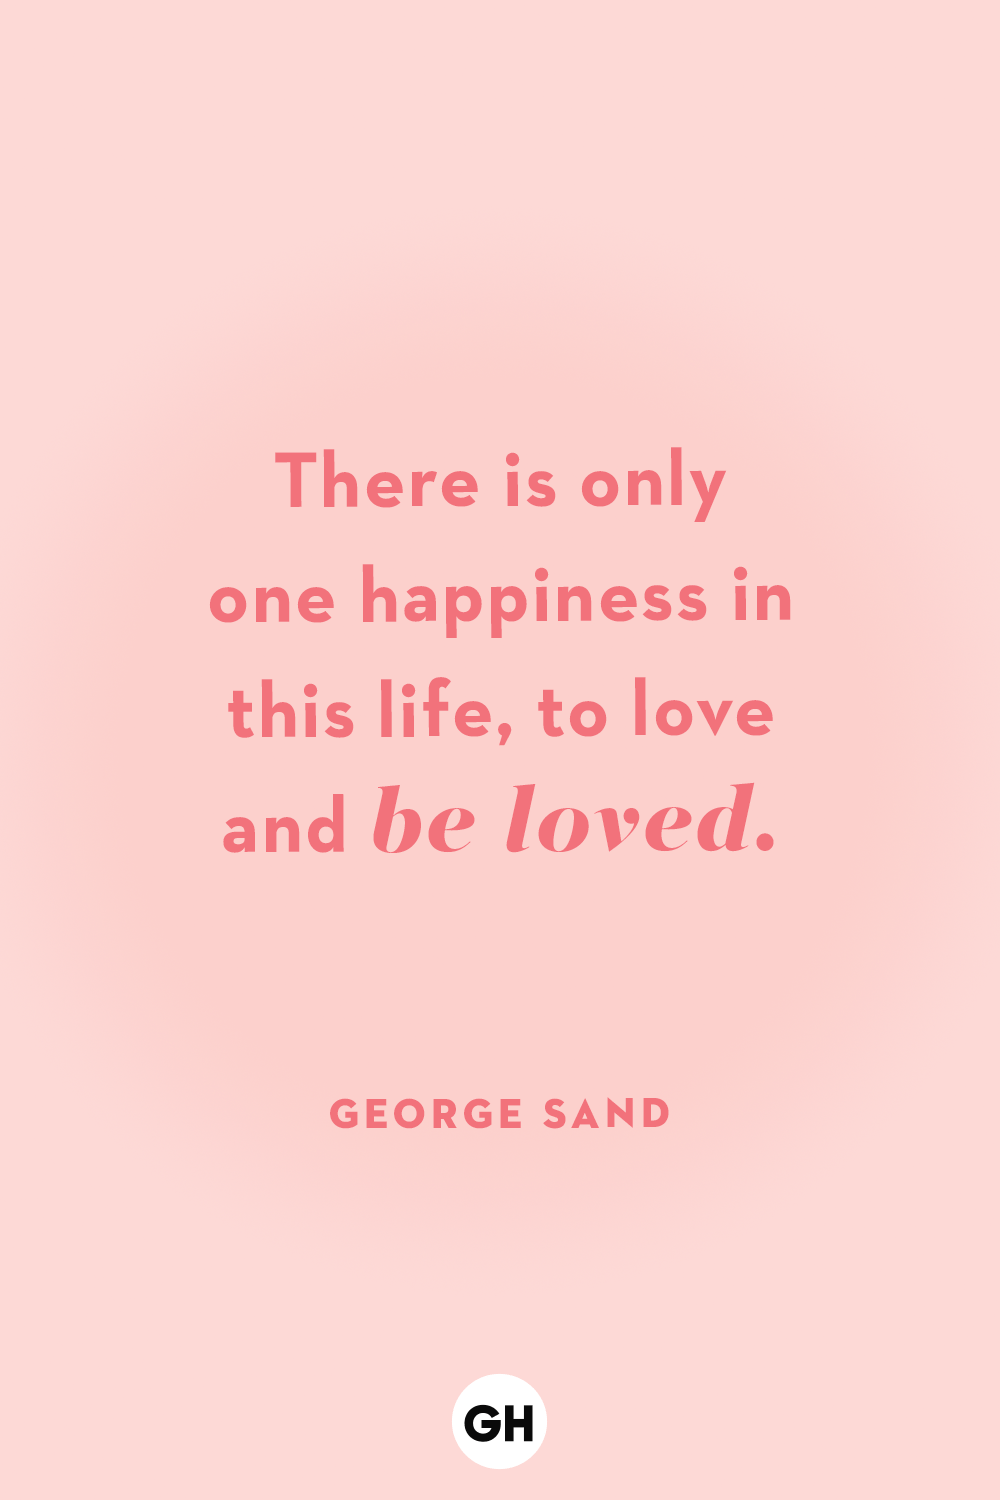 Old Love Quotes : quotes, Quotes, Famous, Sayings, About